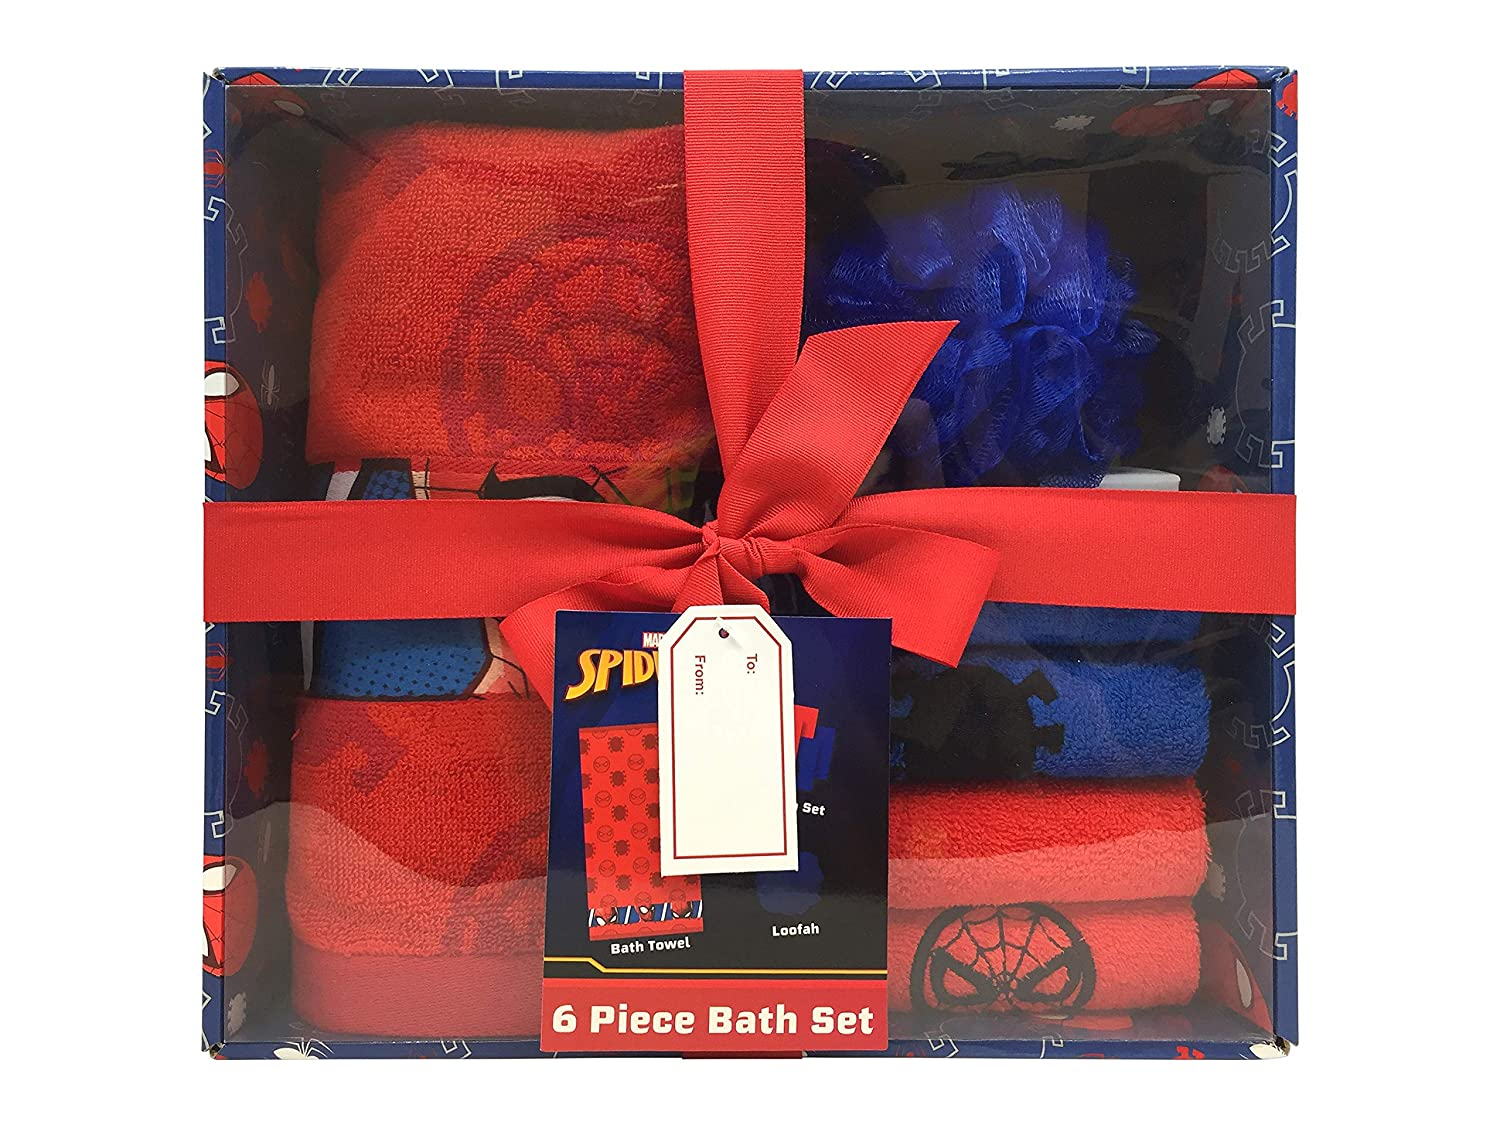 Super Soft /& Absorbent Fade Resistant Cotton Terry Towel Set Washcloth /& Loofah Jay Franco Marvel Spiderman Kids 6 Piece Bath Towel Official Marvel Product